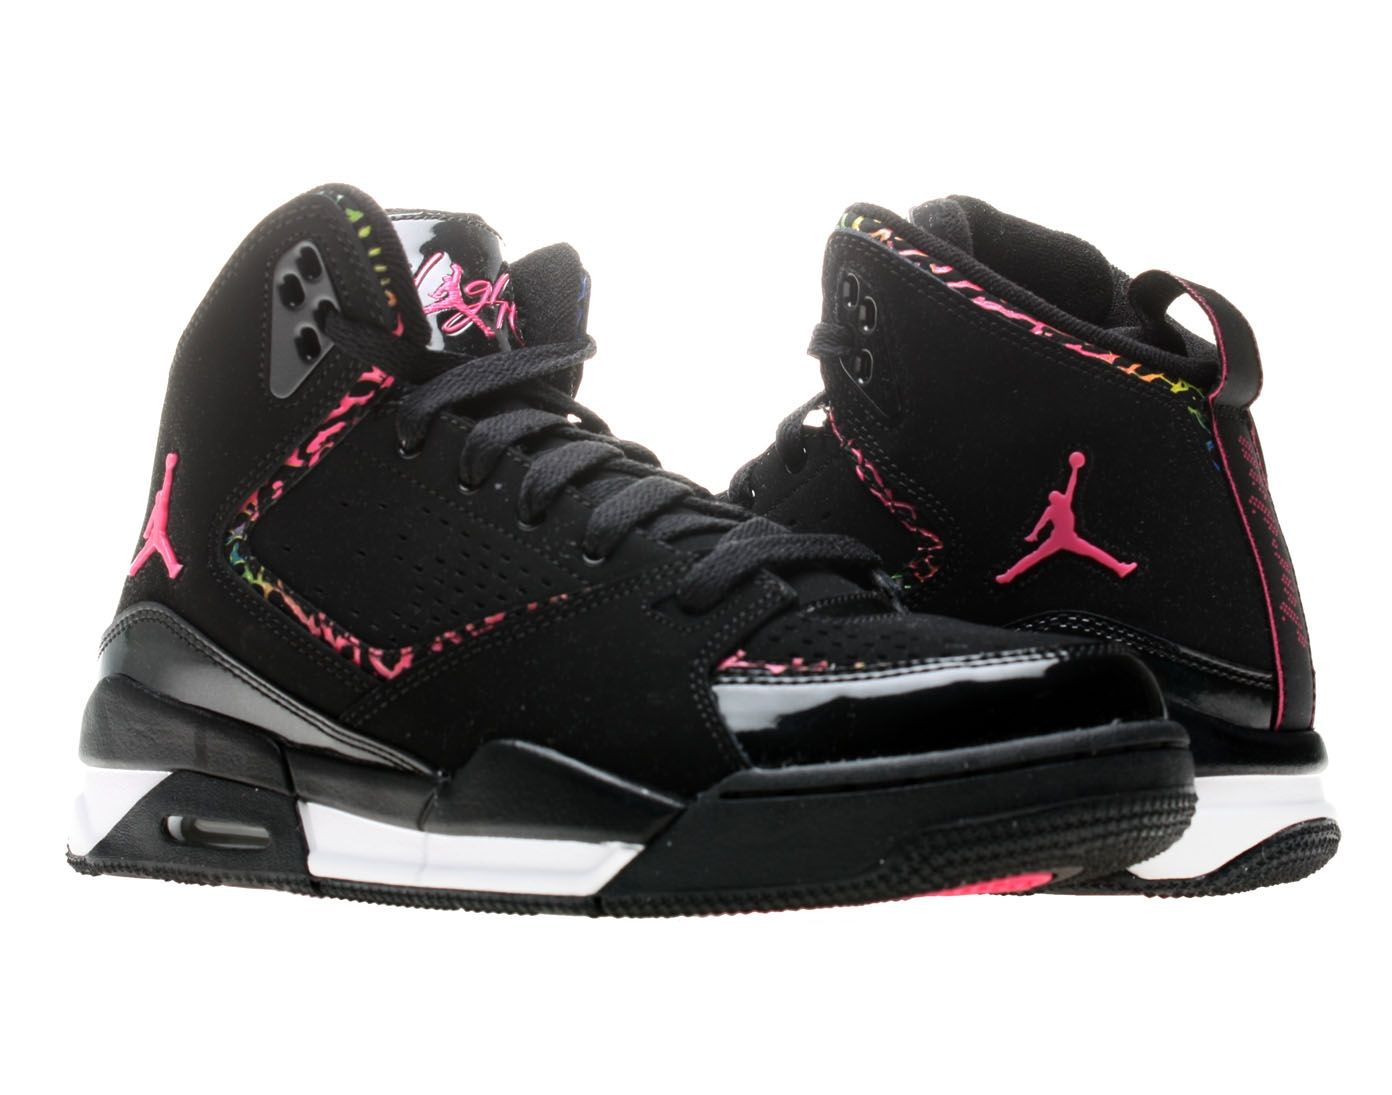 Nike Air Jordan SC-2 (GS) Girls Basketball Shoes [459856-009